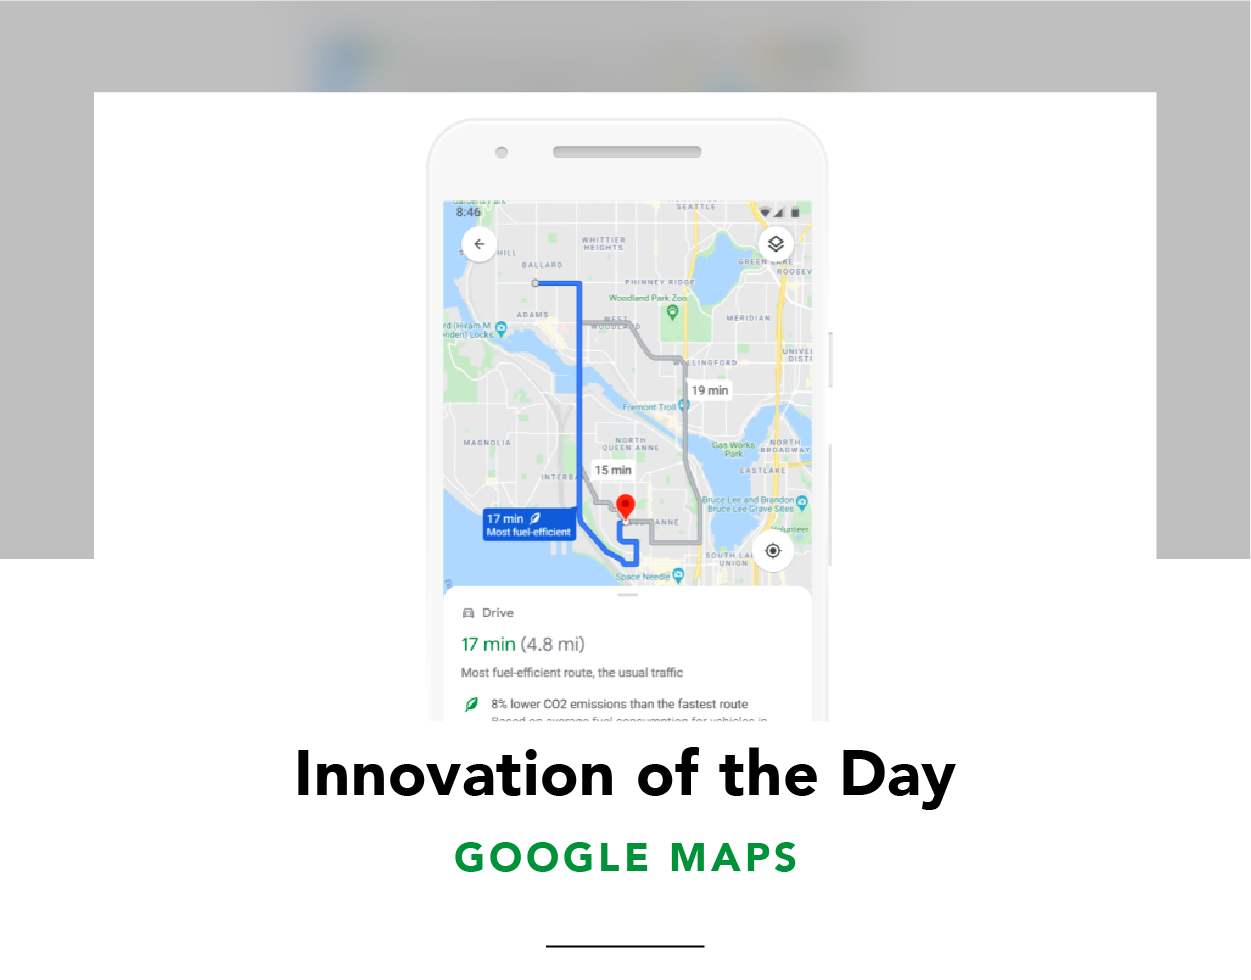 Screenshot of Google Maps on a phone, showing a route with lower CO2 emissions